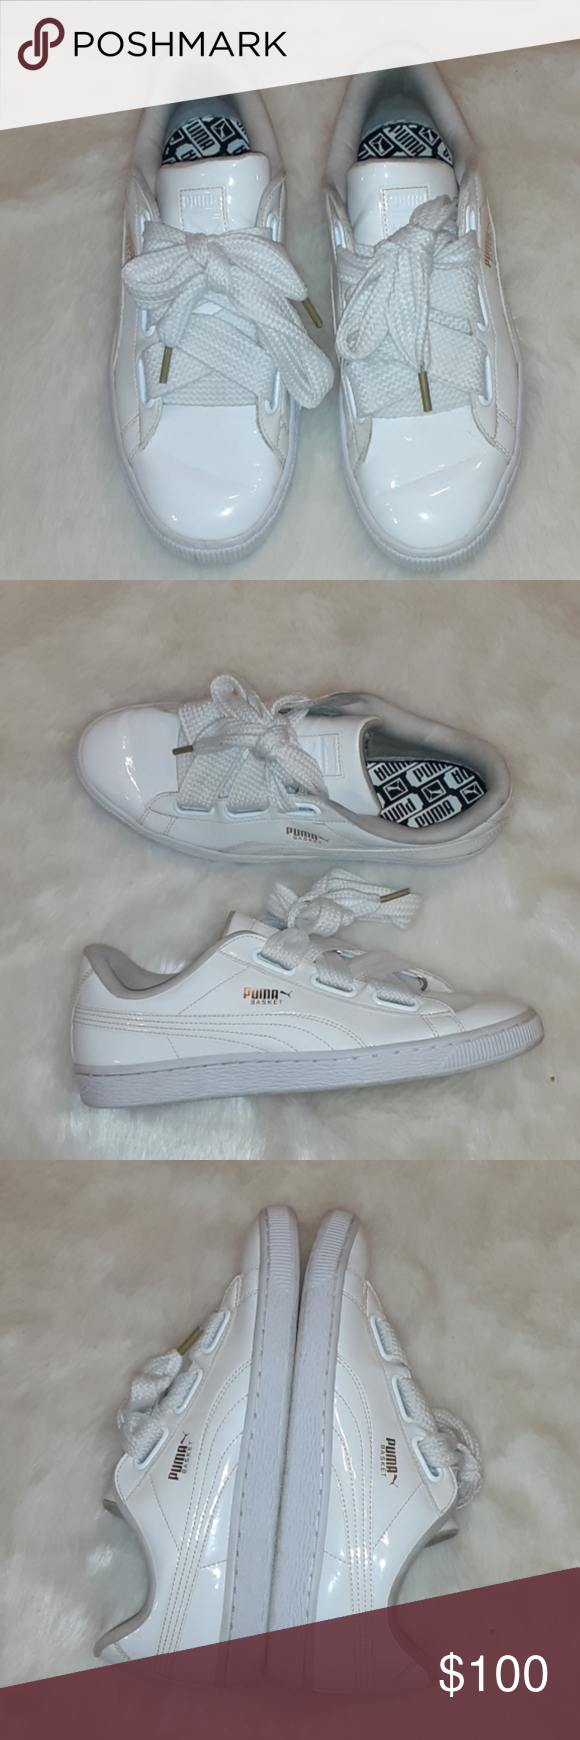 PUMAS Patent Leather sneakers Super